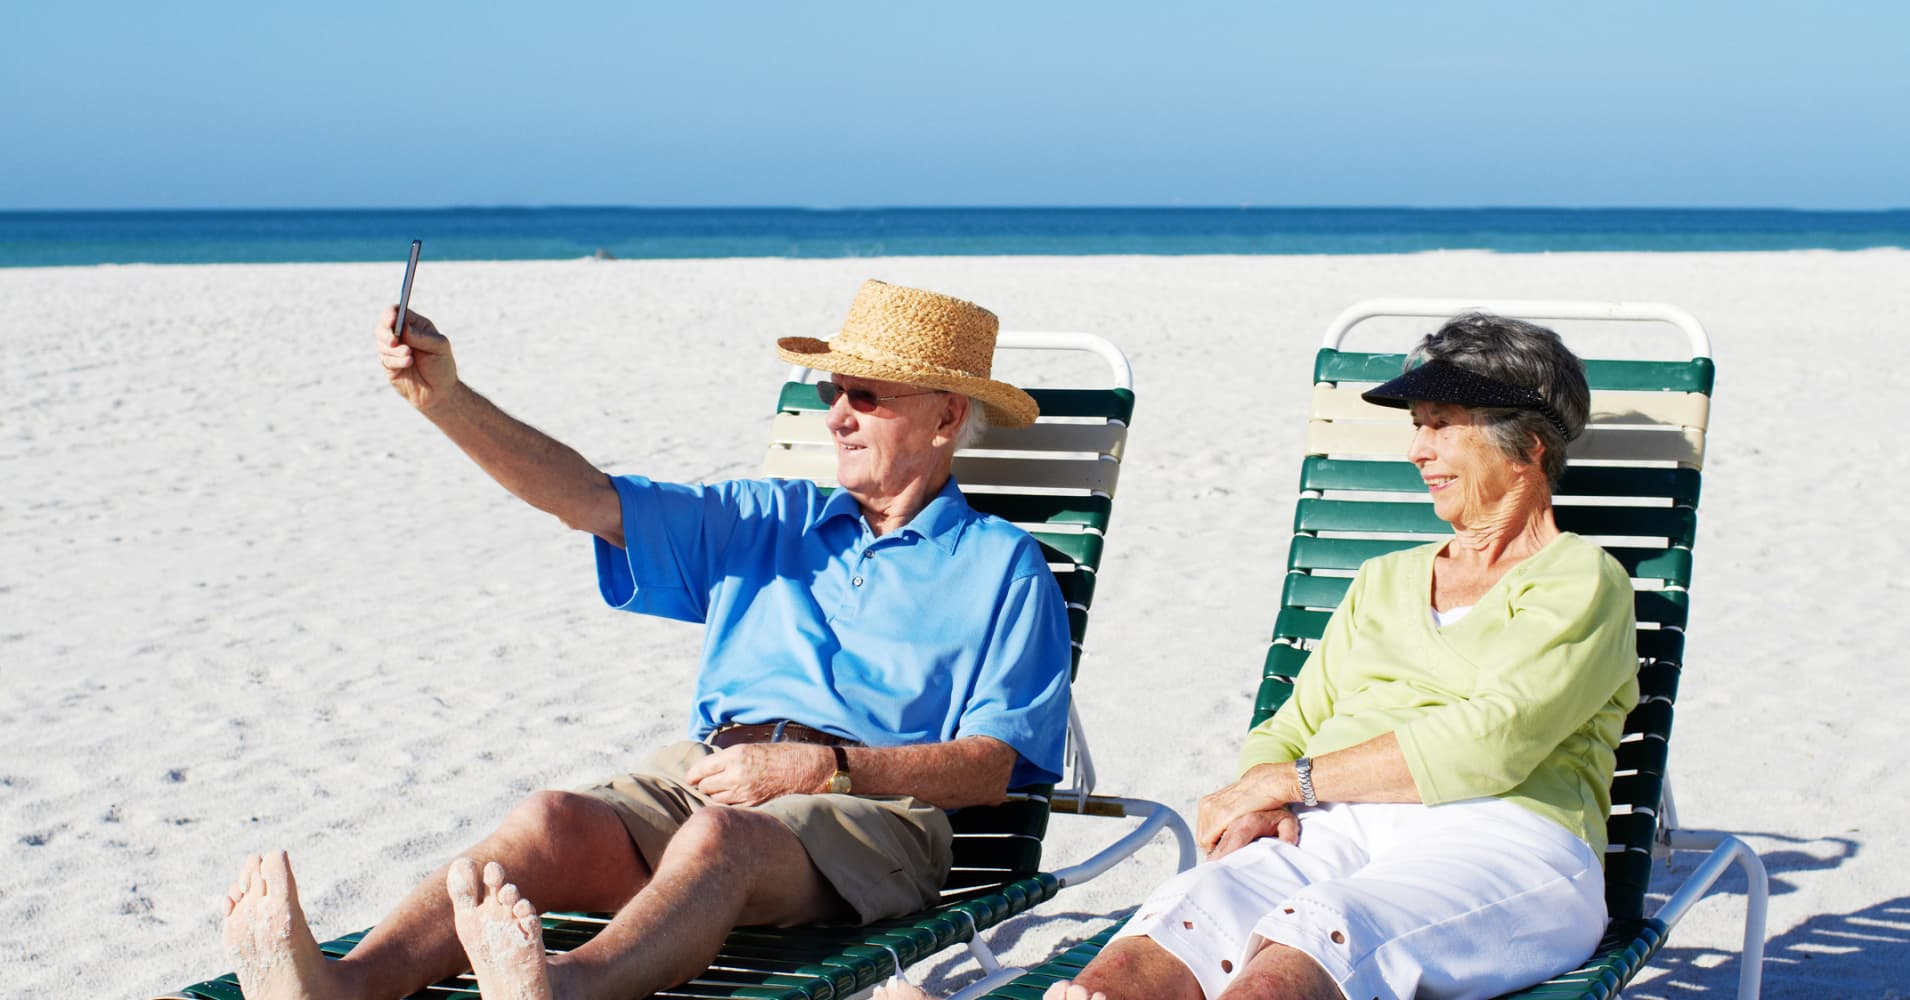 4 of the 5 most affordable retirement spots are in this state